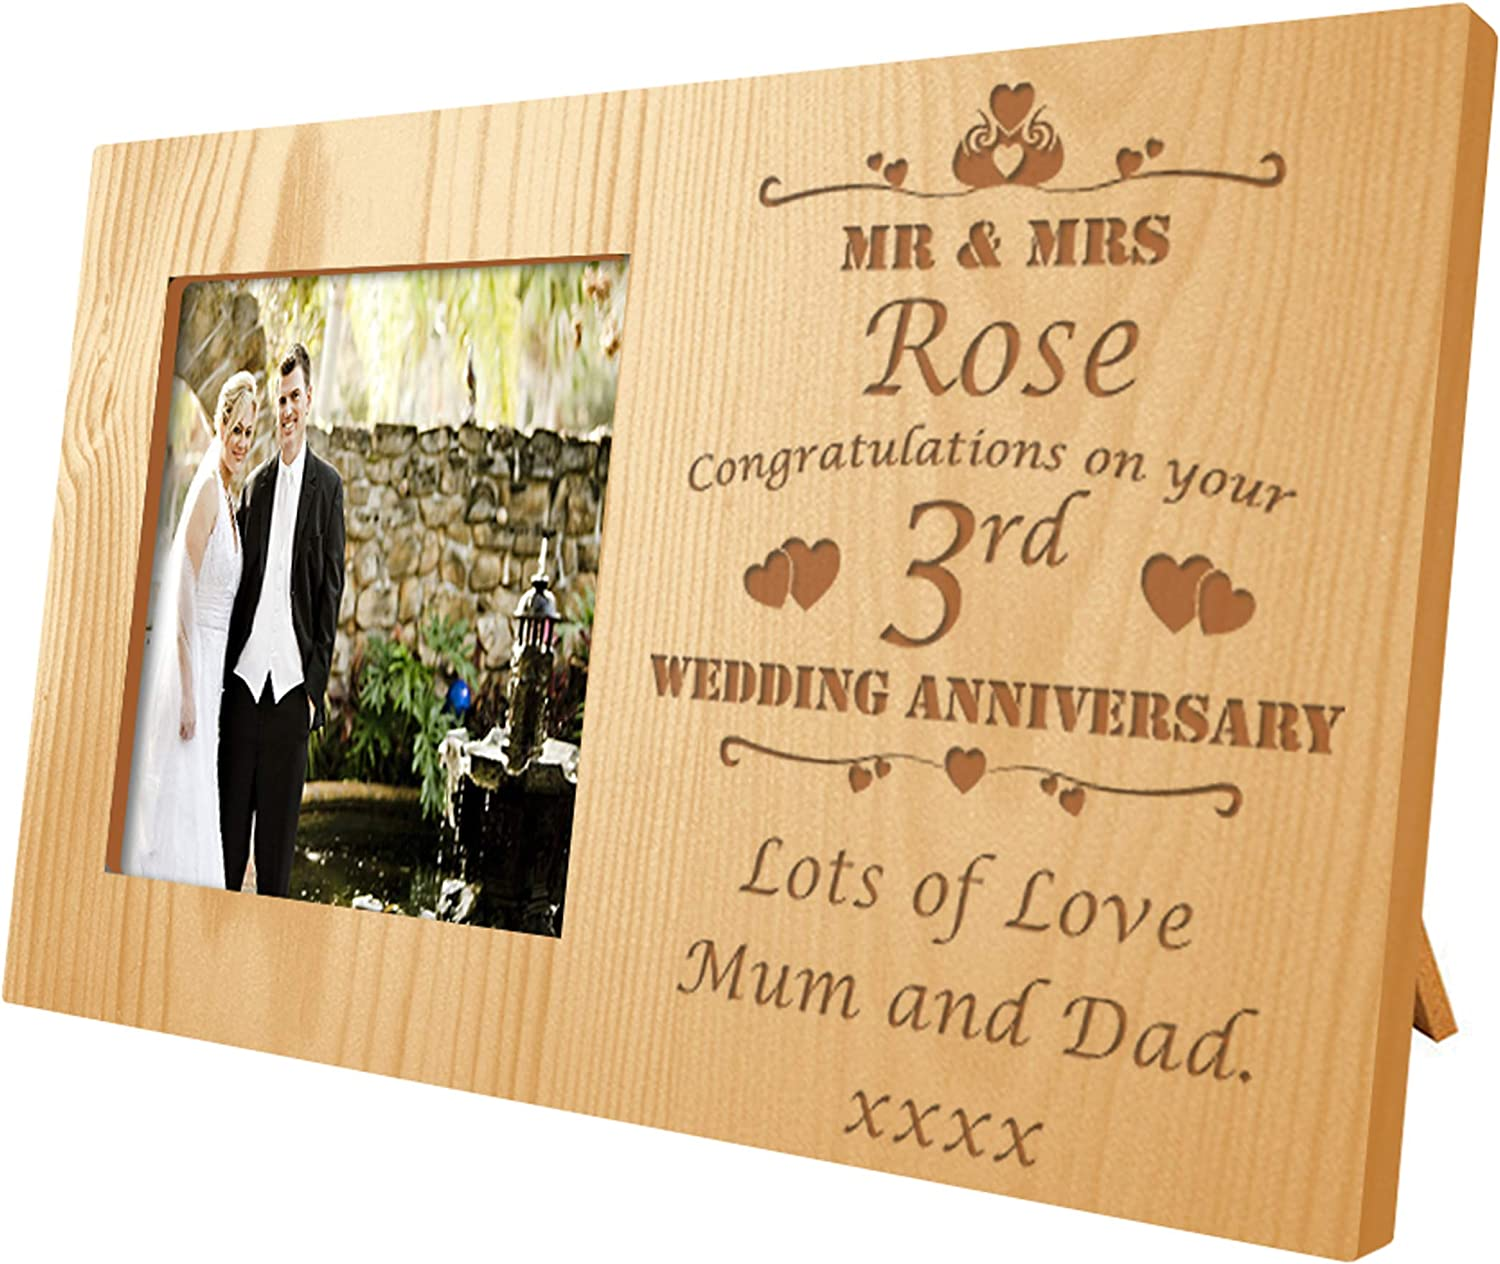 Crazy Tony S 3rd Wedding Anniversary Laser Engraved Wooden Photo Frame Leather Husband Gift Amazon Co Uk Kitchen Home